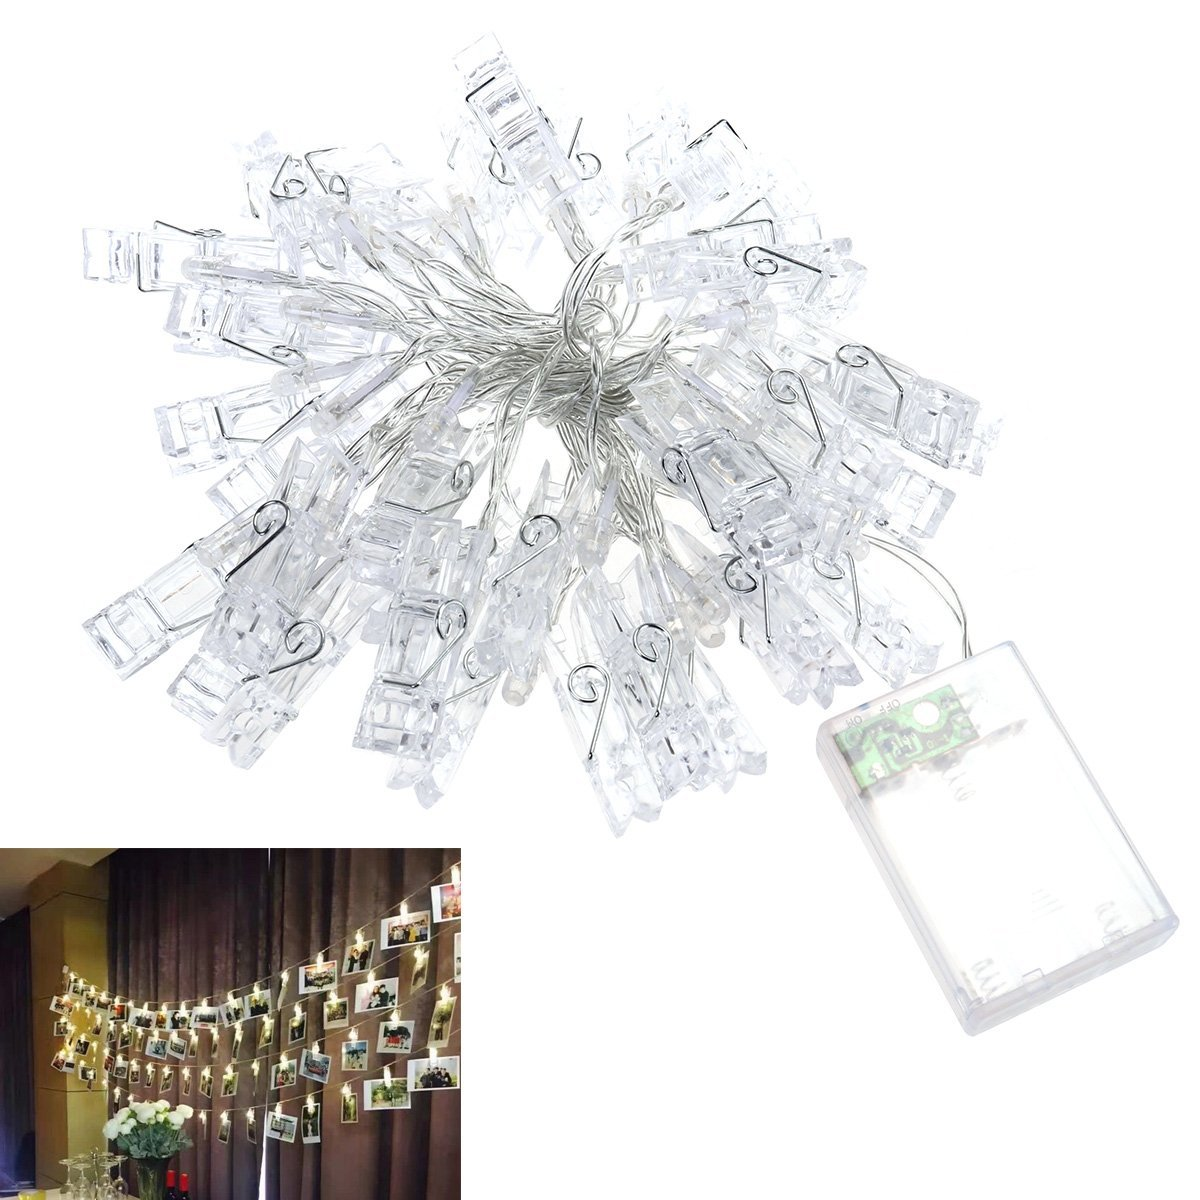 LEDMOMO 4.2M Clip String Lights Battery Operated Decorative 40 LED Light Ropes and Strings for Hanging Pictures Cards (Warm Light)